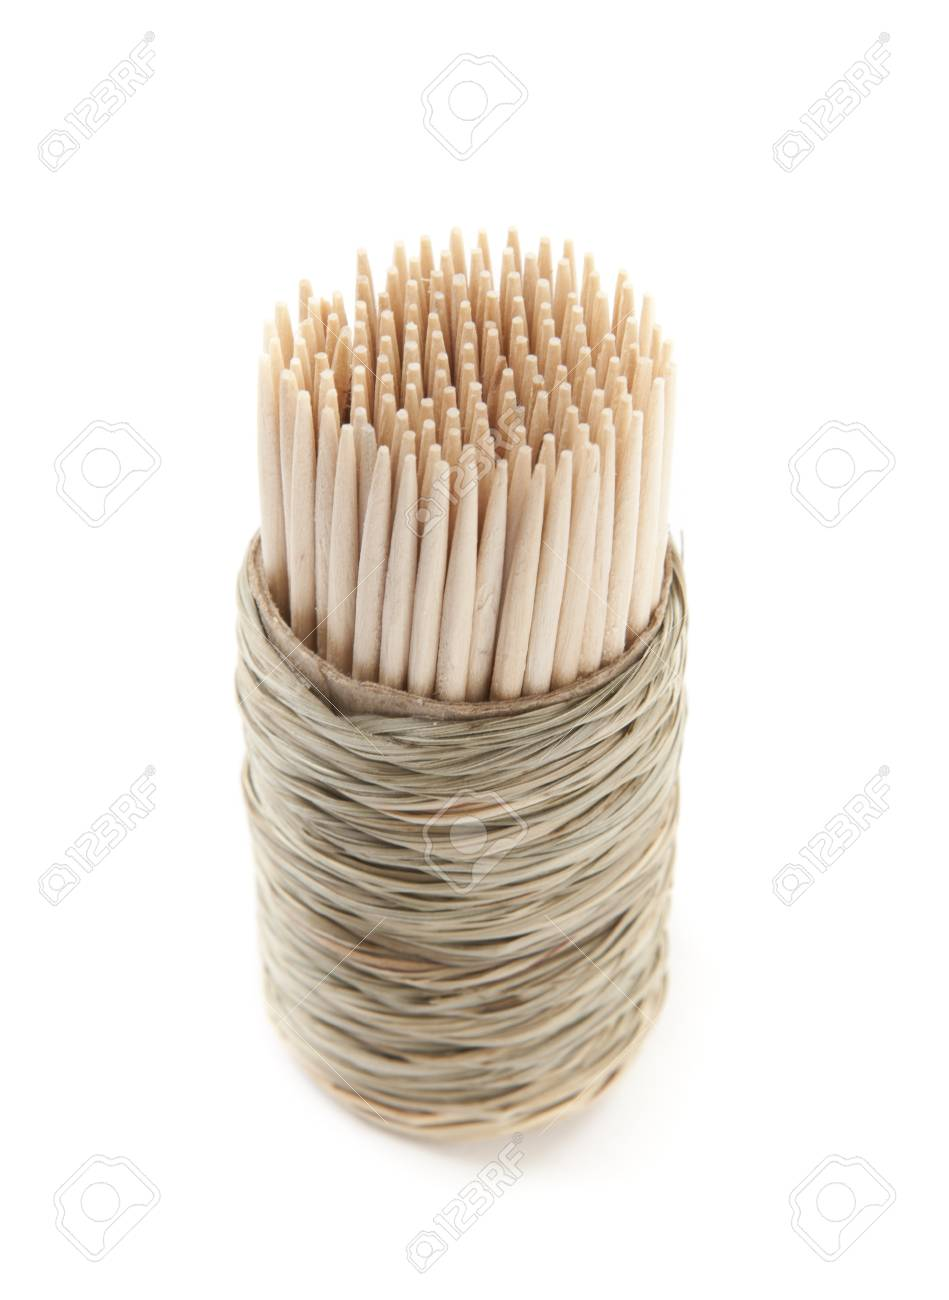 Closeup of Toothpick on White Isolated Background Stock Photo - 11276371